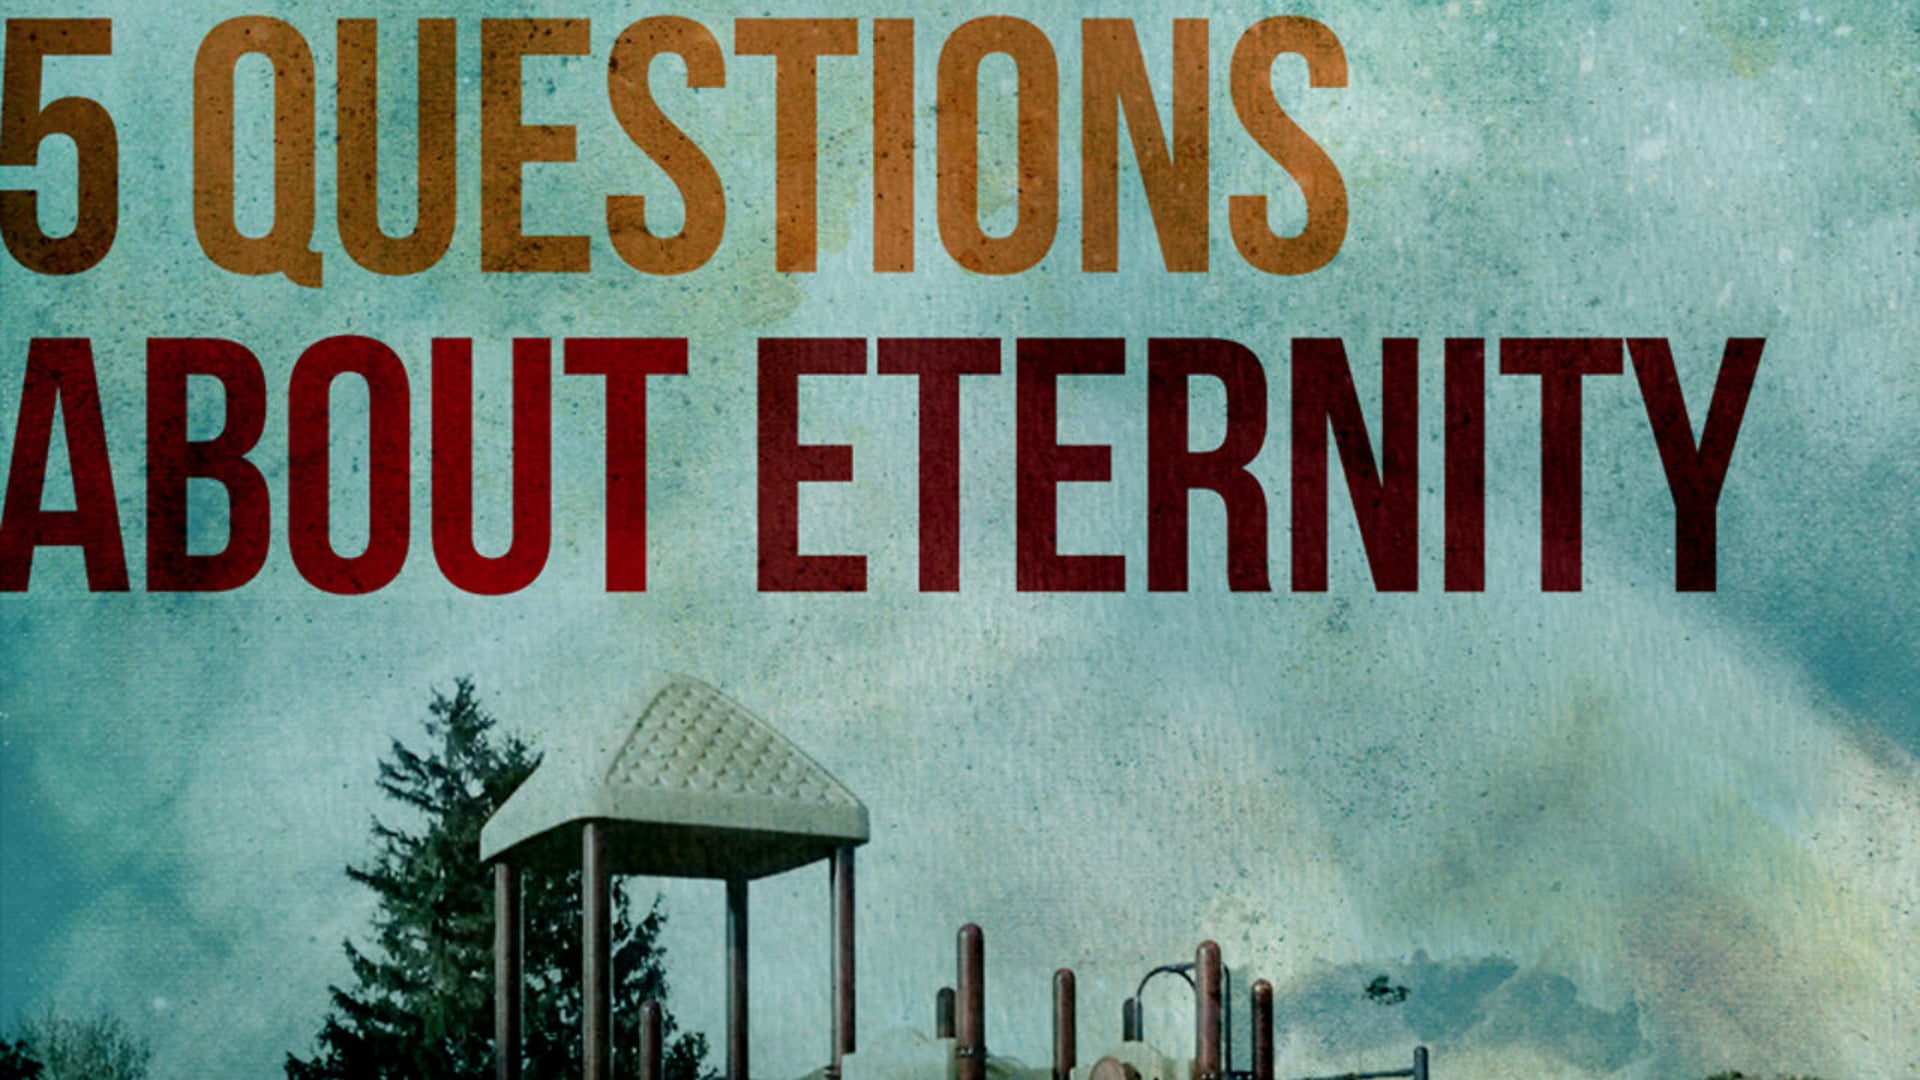 5 Questions About Eternity Full